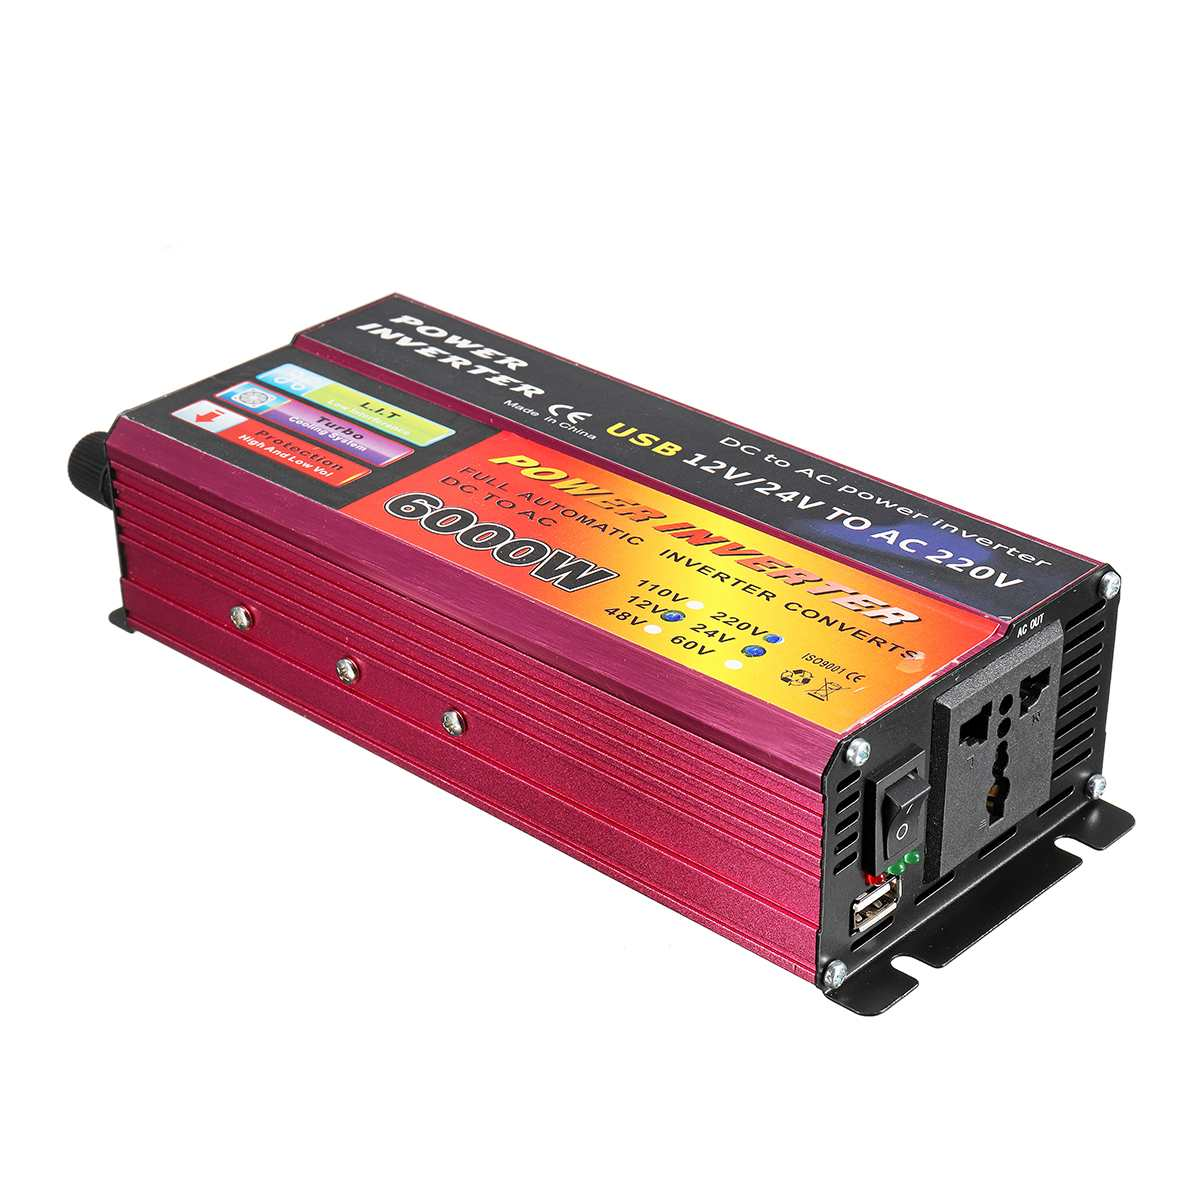 Solar Inverter 1000W 6000W Peak Voltage Converter Transformer 19